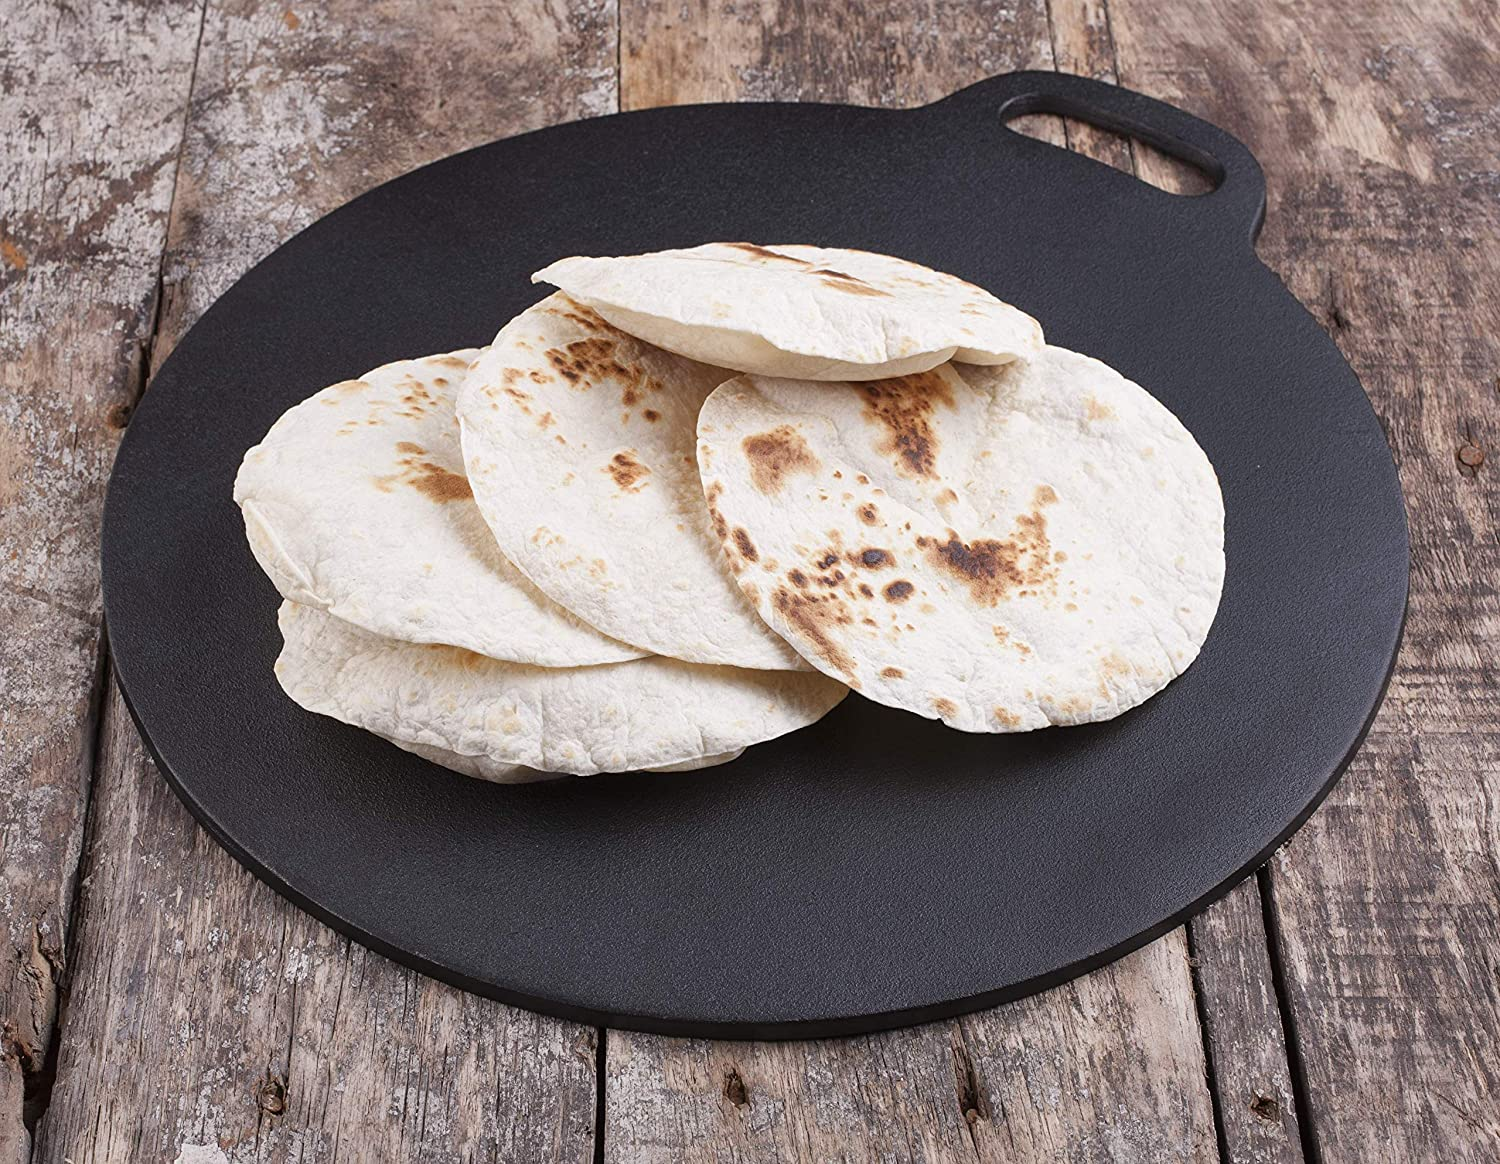 Victoria GDL-182 Cast Iron 15- Inch Tawa Comal Traditional Budare, Crepe Pan, Dosa Griddle Large Black